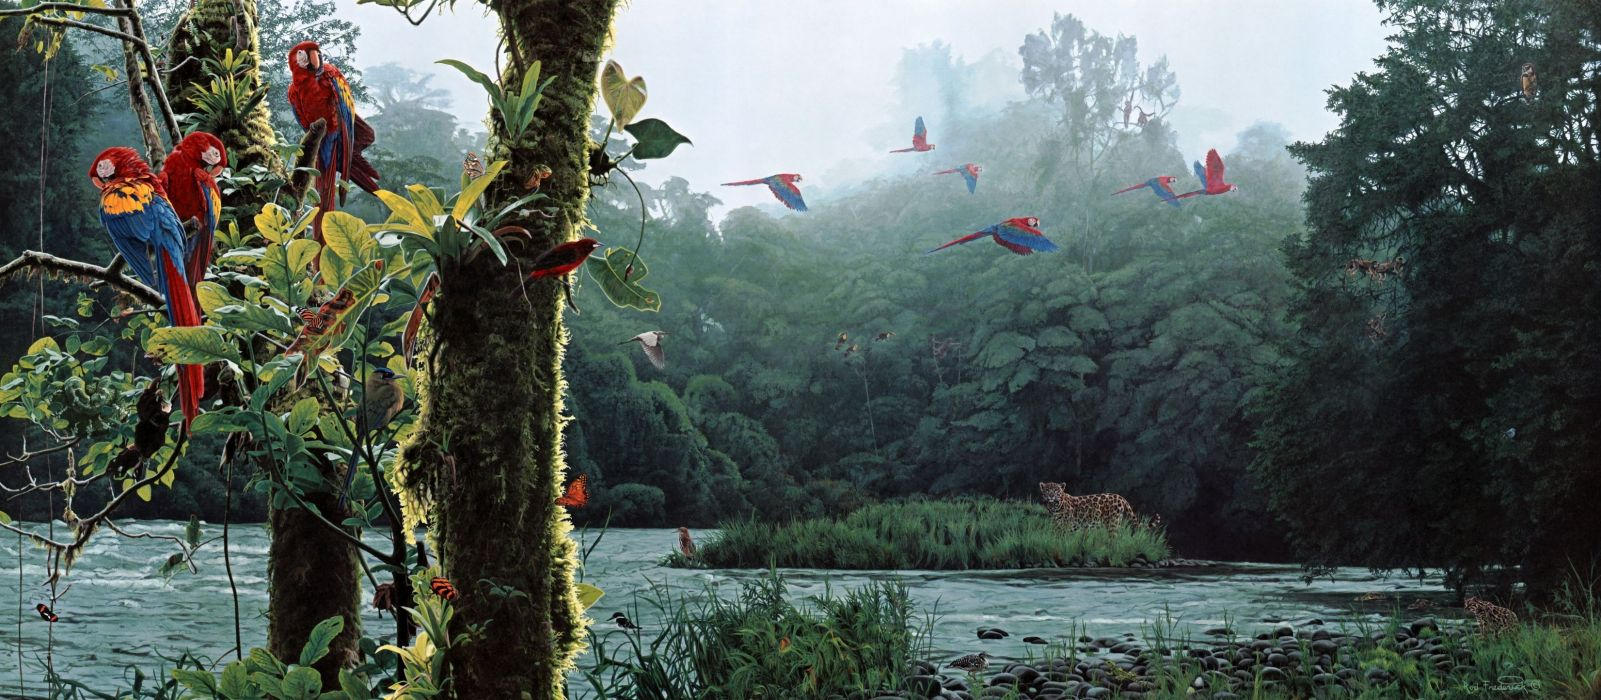 landscapes nature trees forest jungle scenic paintings rivers birds parrot colors flying fantasy wallpaper